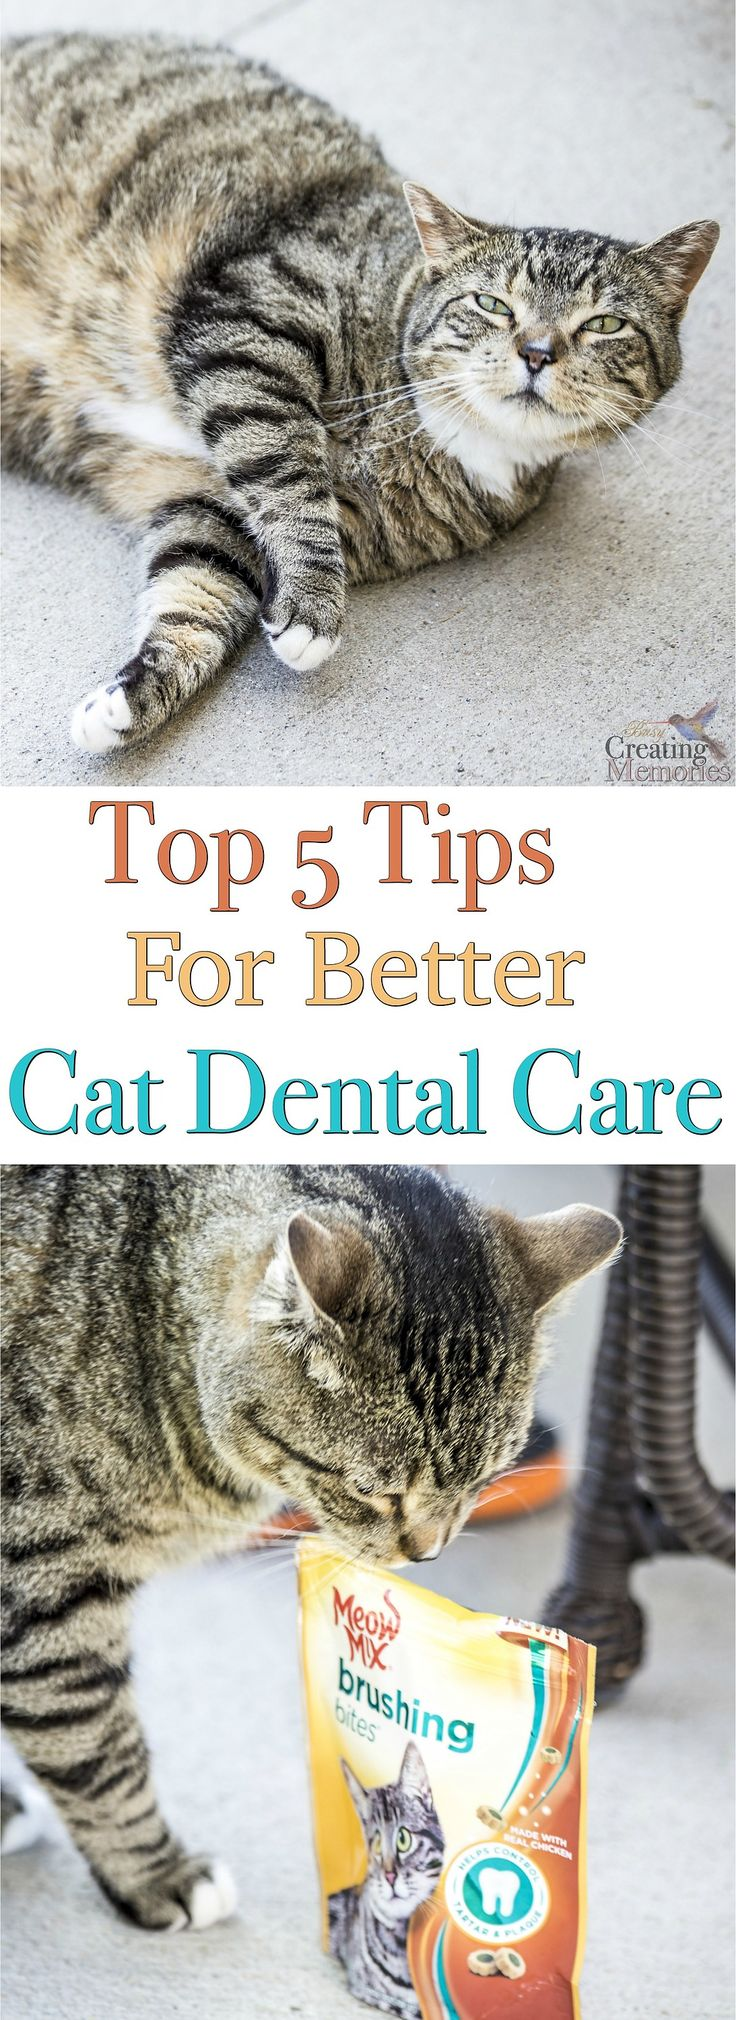 best cat care images on pinterest cat cat cute kittens and kittens